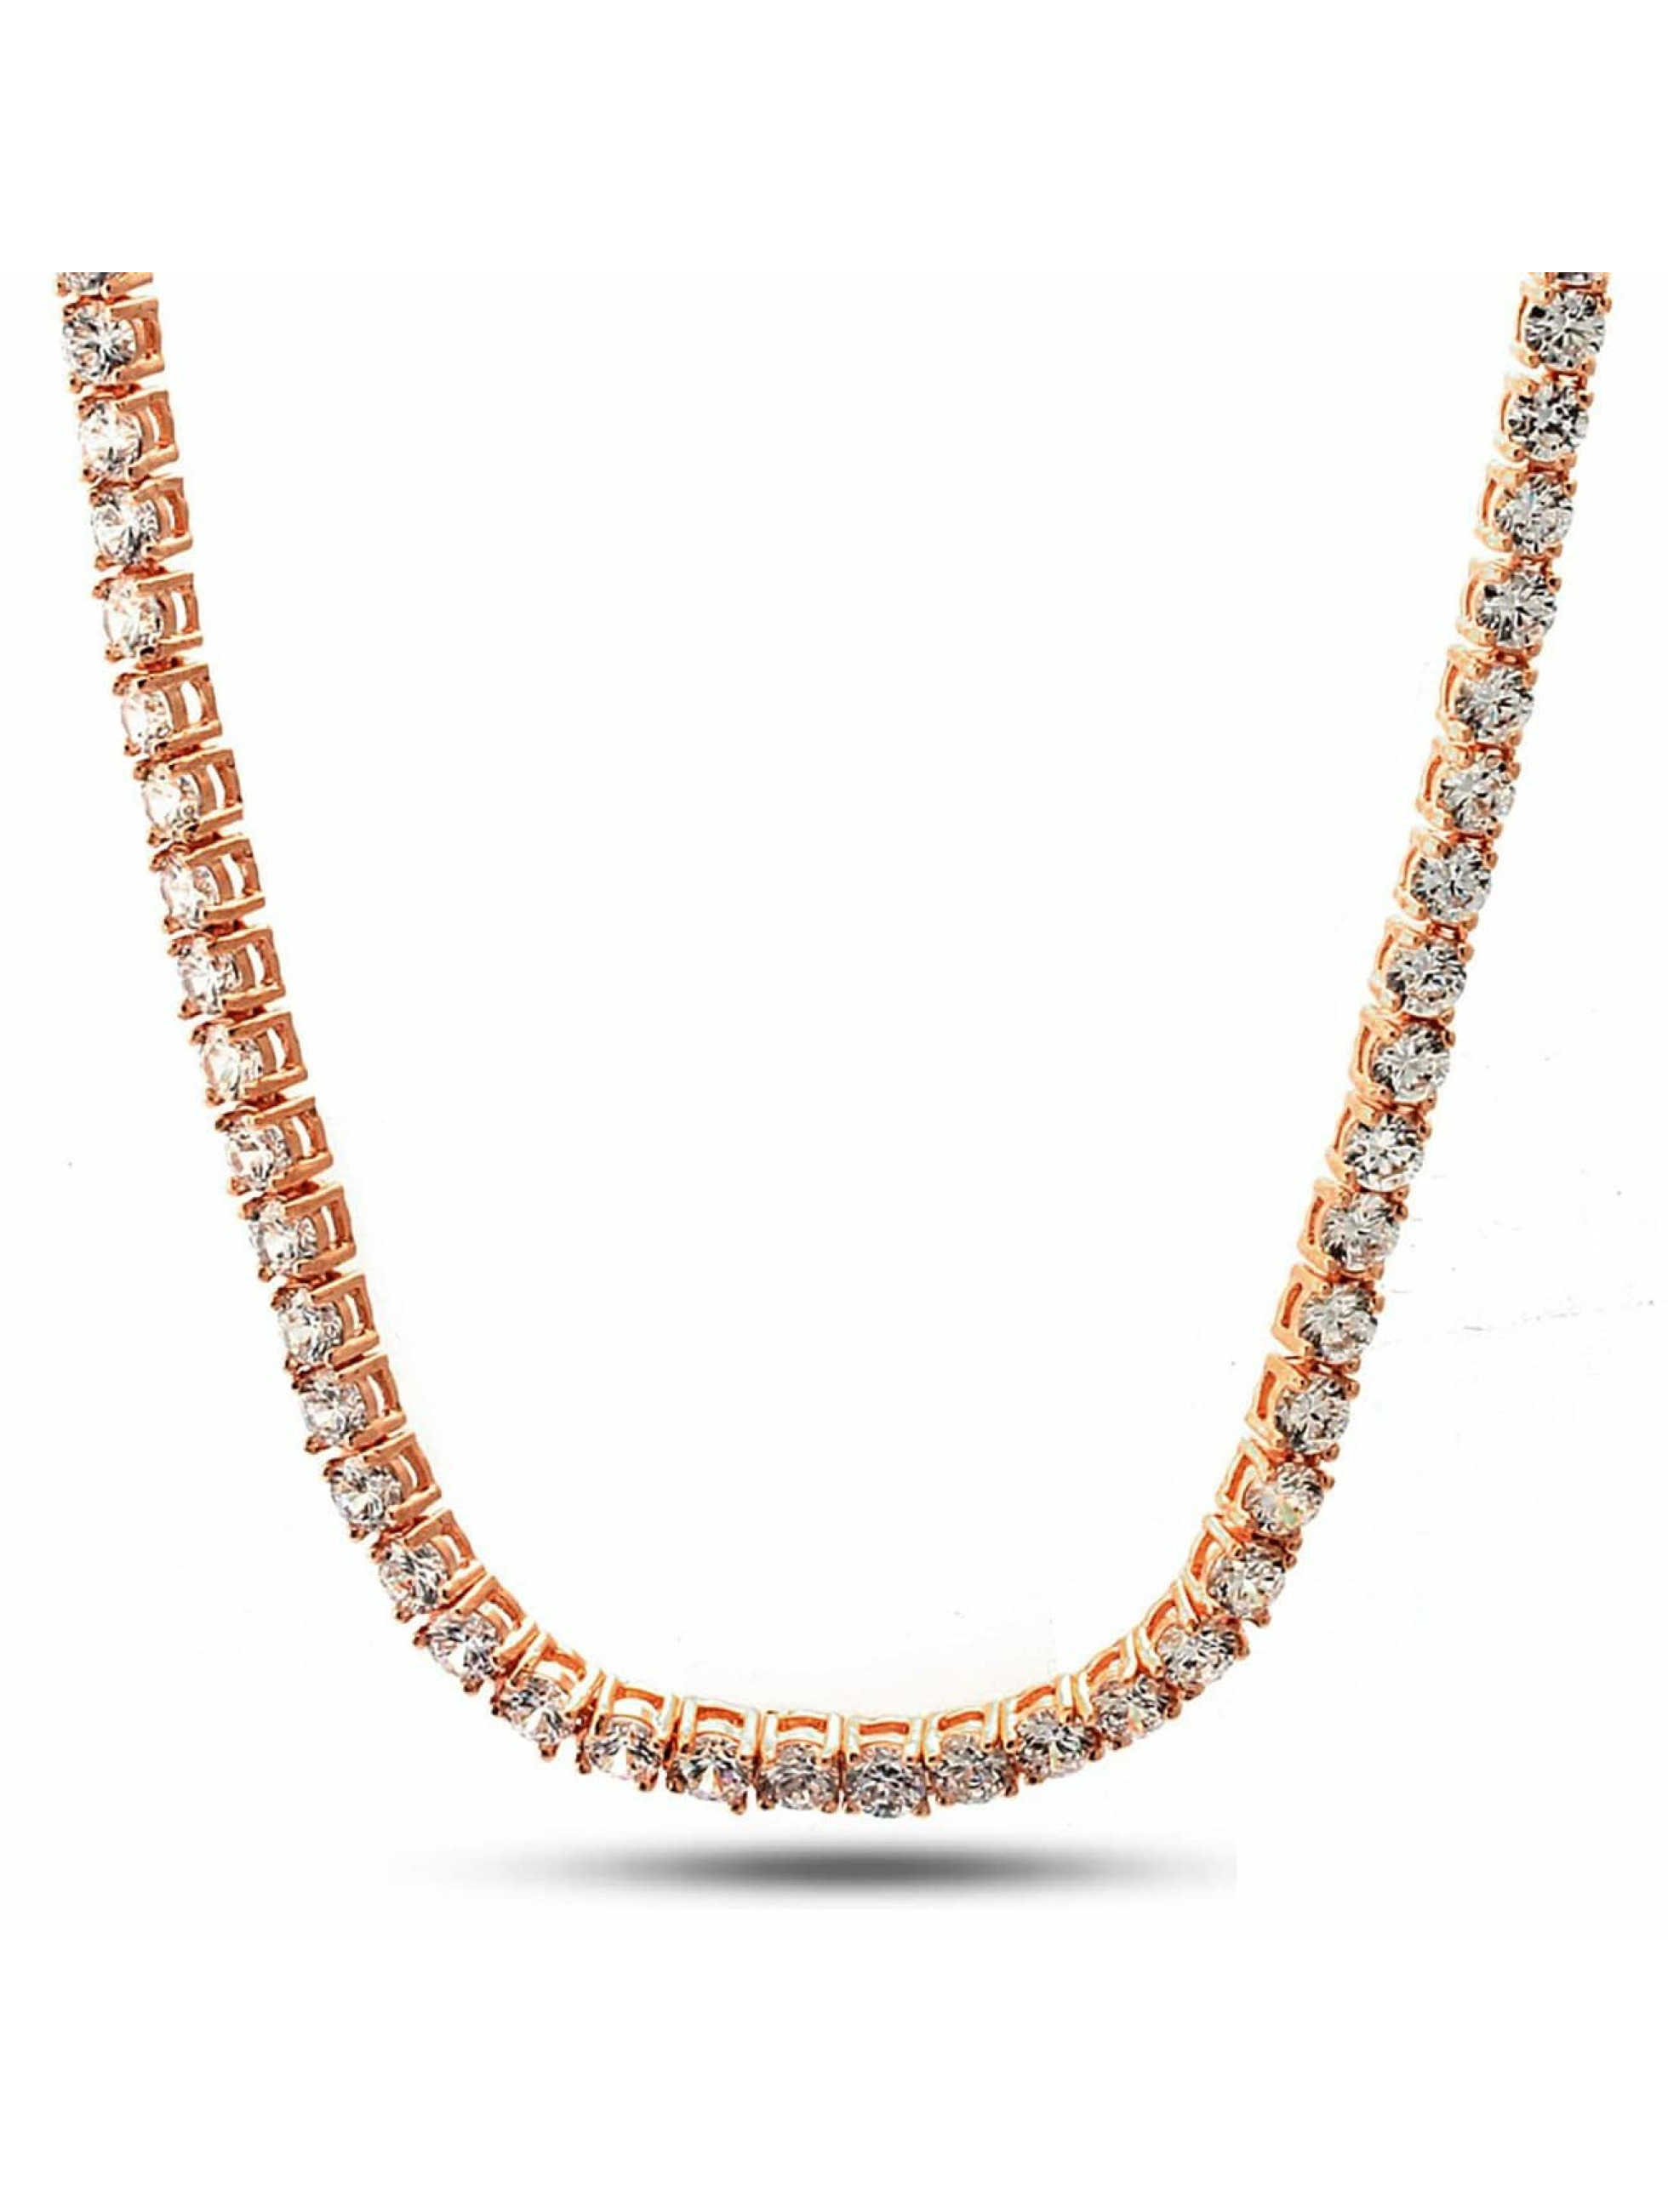 KING ICE Collier Gold_Plated 5mm Single Row CZ Pharaoh or